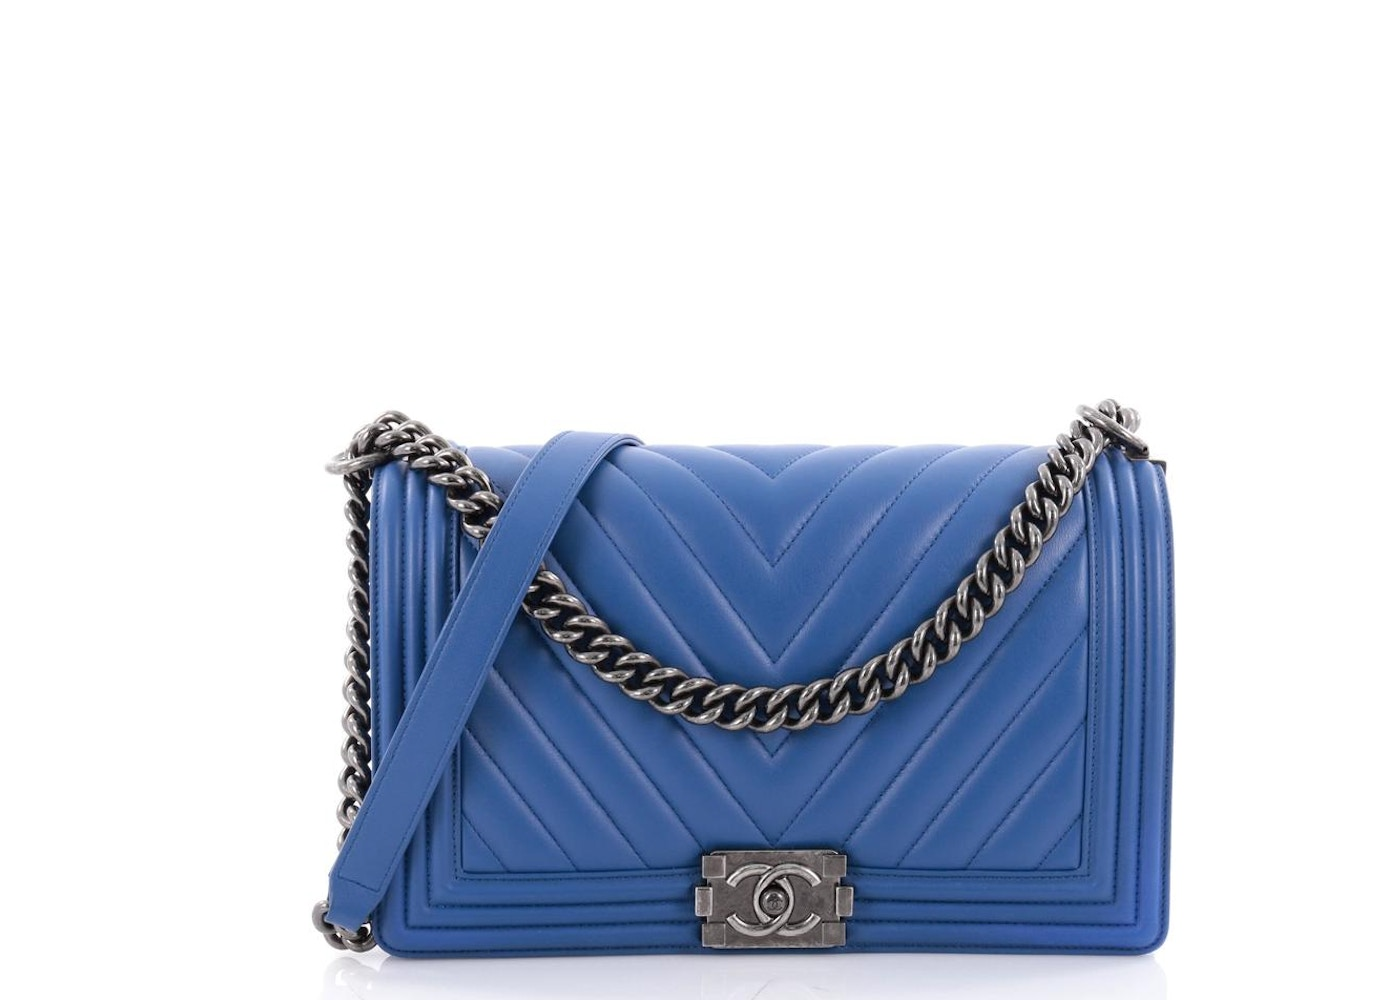 8767c4bf3193 Chanel Boy Flap Bag Quilted Chevron New Medium Blue. Quilted Chevron New  Medium Blue